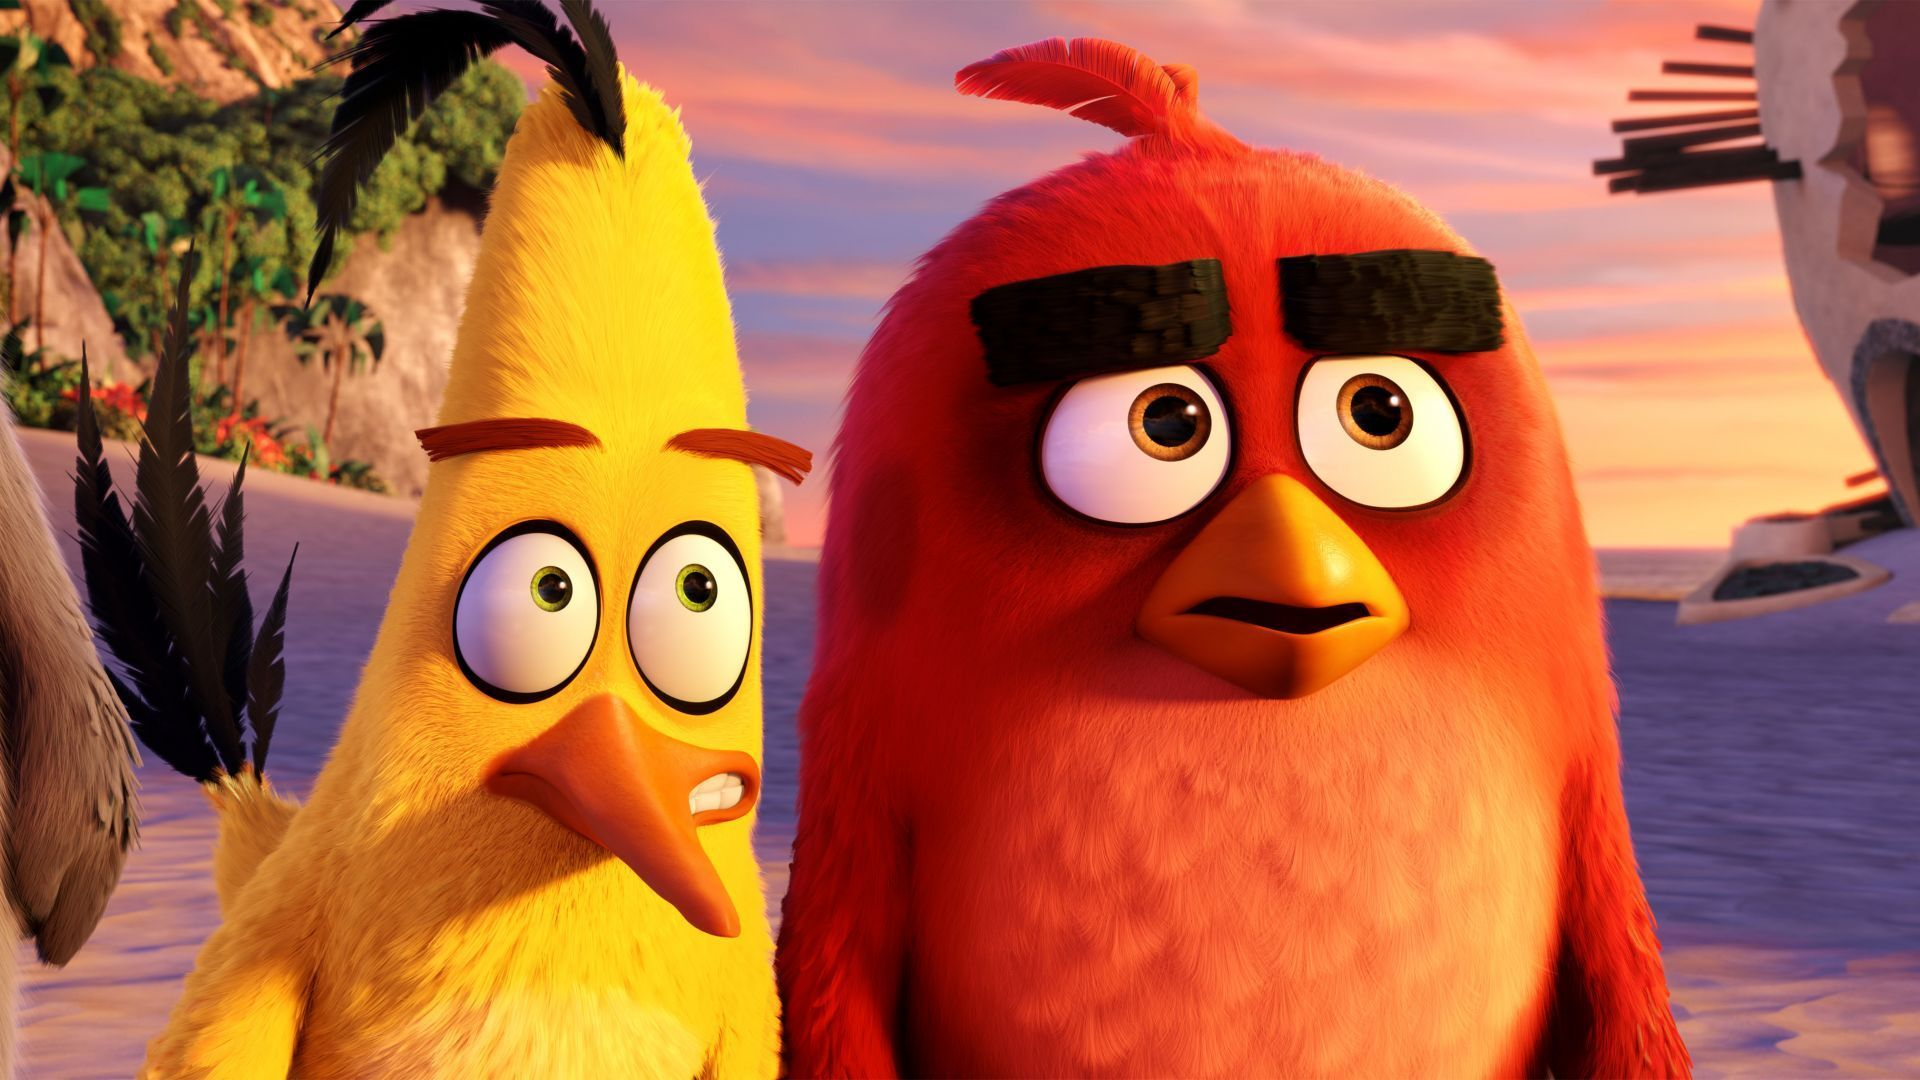 Wallpaper Angry Birds Movie Chuck Red Best Animation Movies Of 2016 Movies 7082 Angry Birds Animacoes Legais Animacao